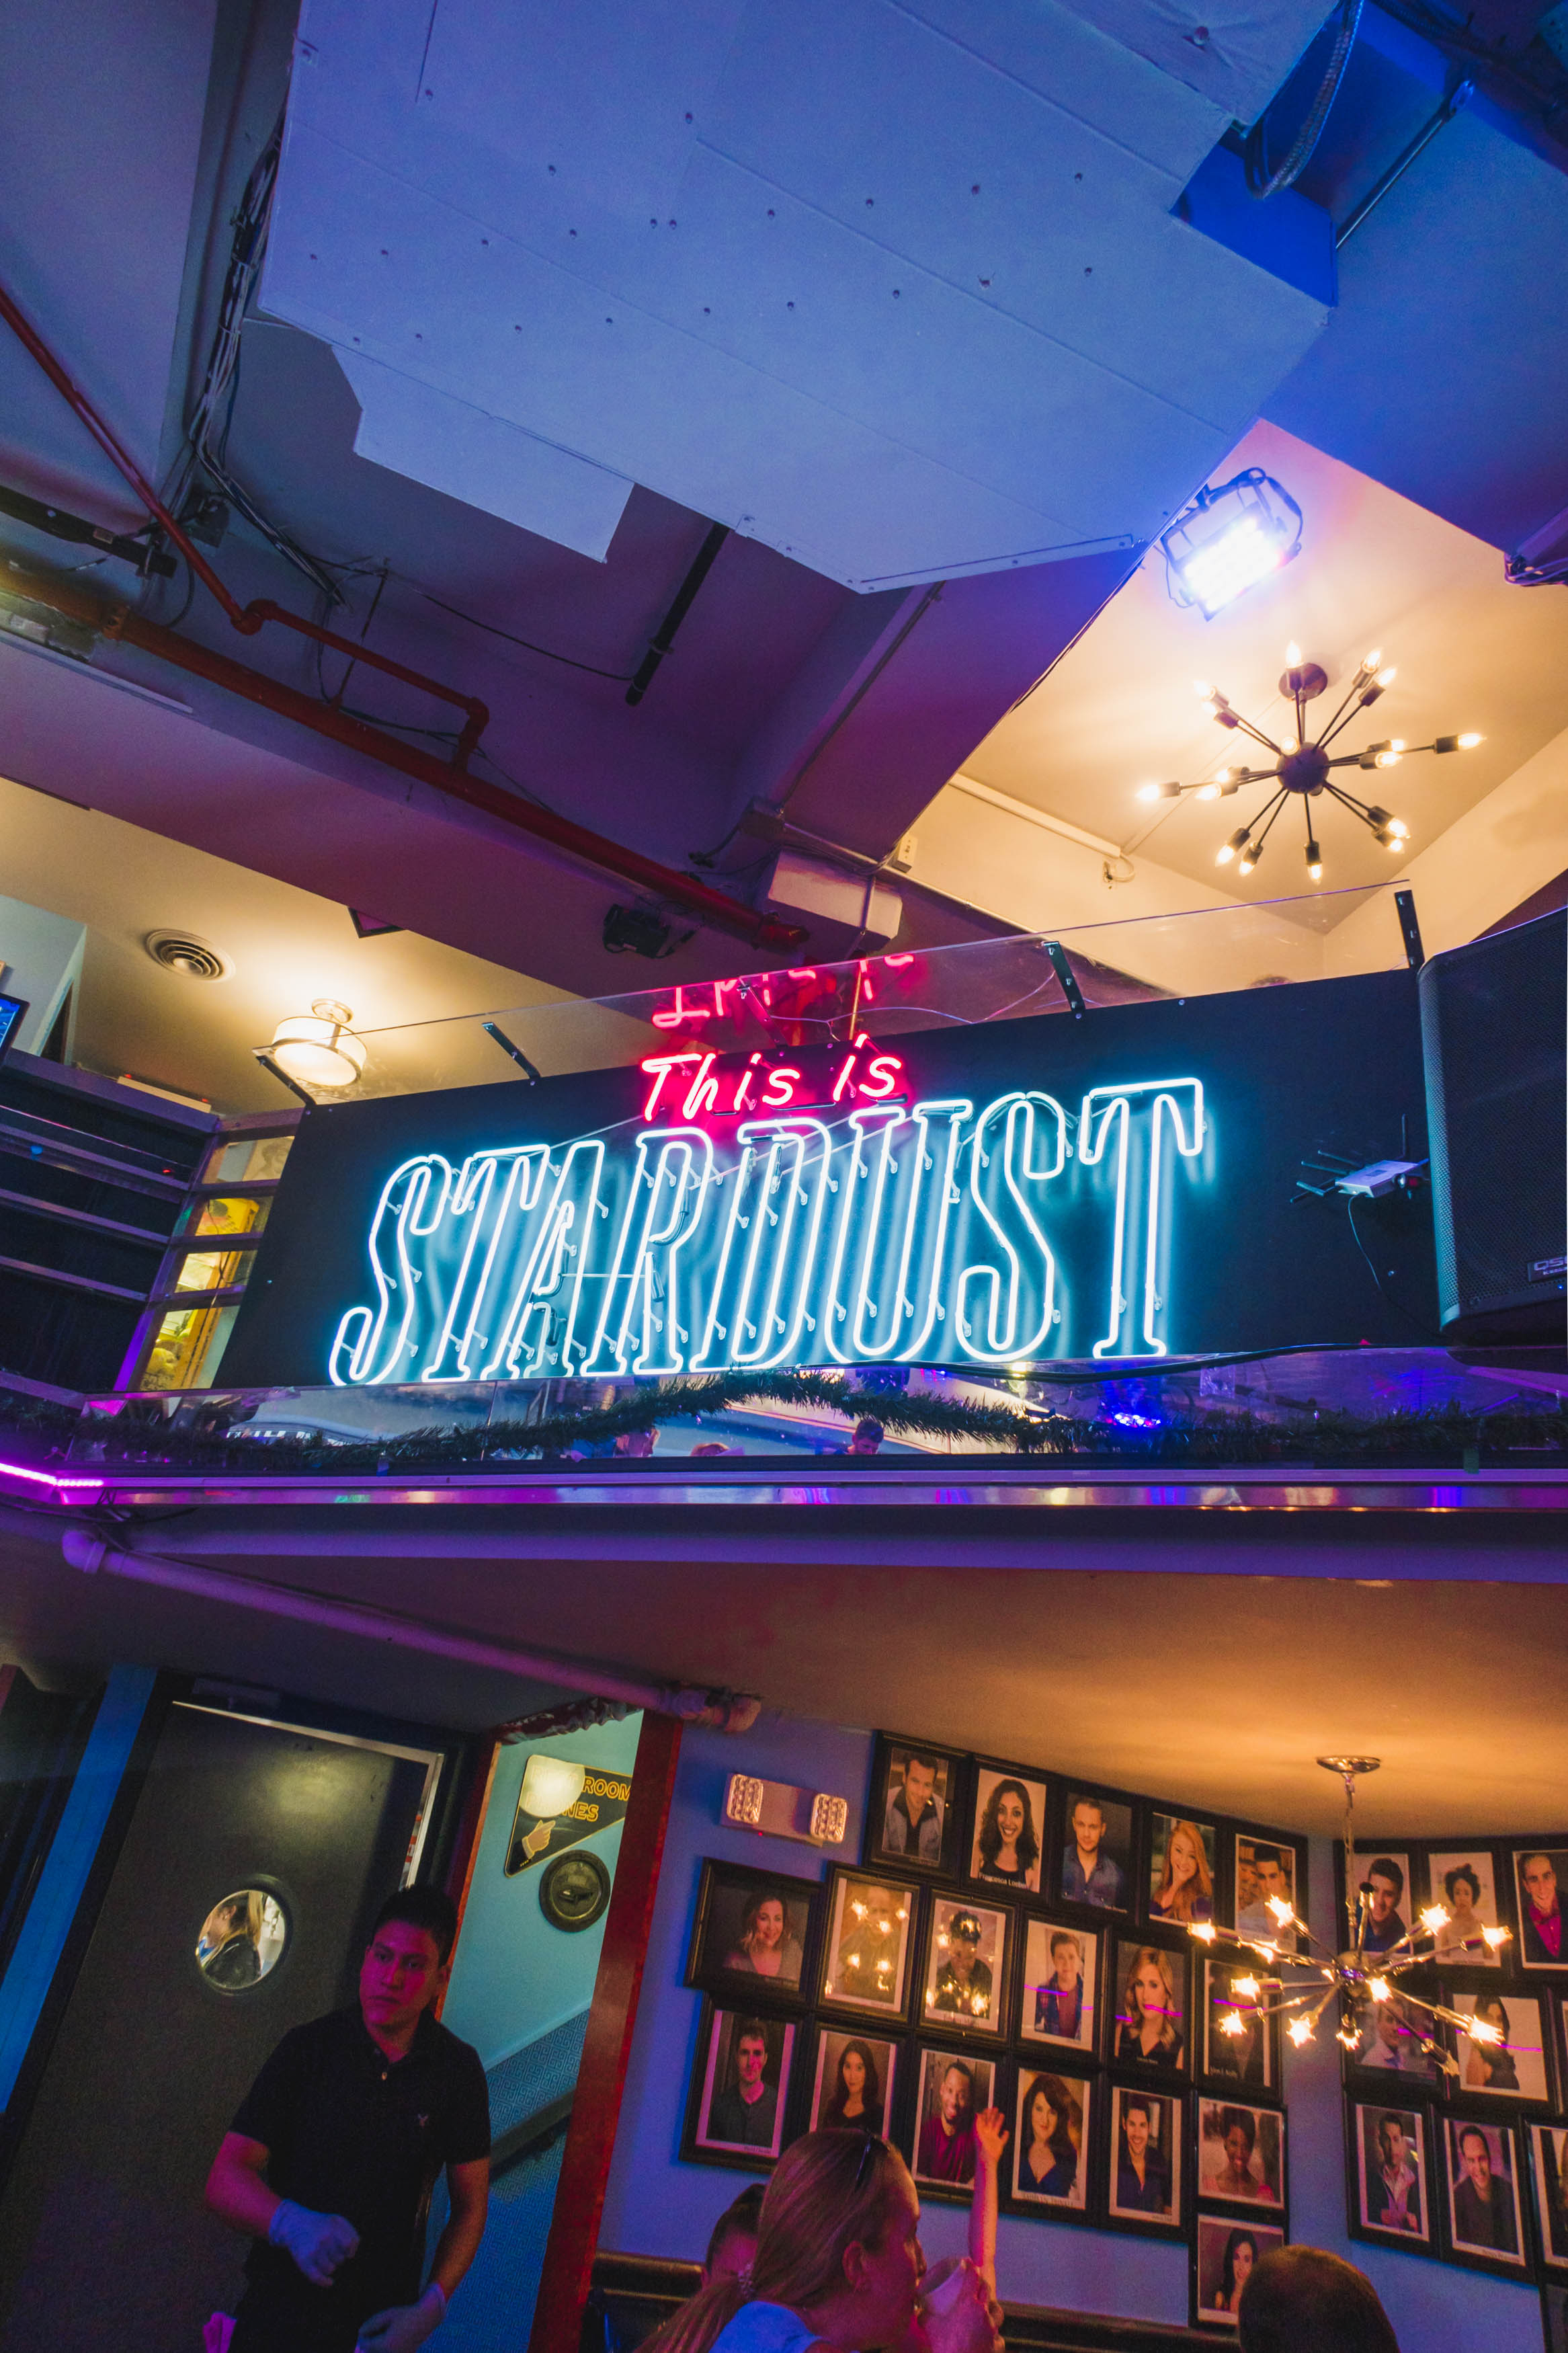 stardust-cafe-new-york-1.jpg